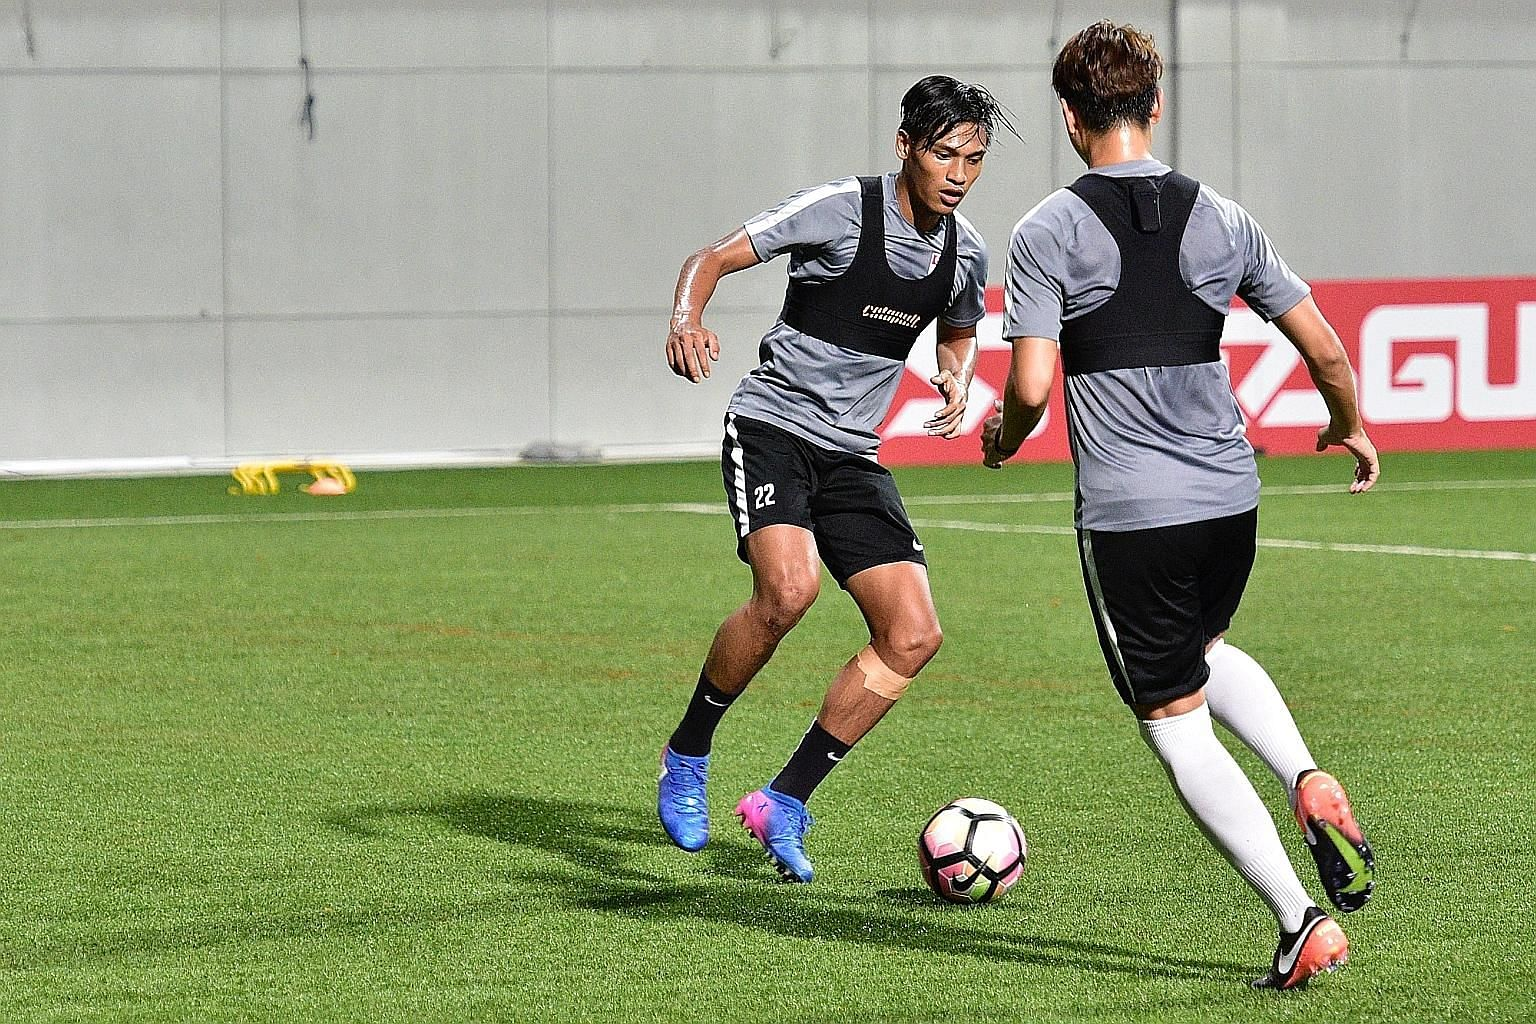 The Lions will be counting on Khairul Nizam (left) and Khairul Amri to deliver the goods as the only two natural forwards called up to the squad.